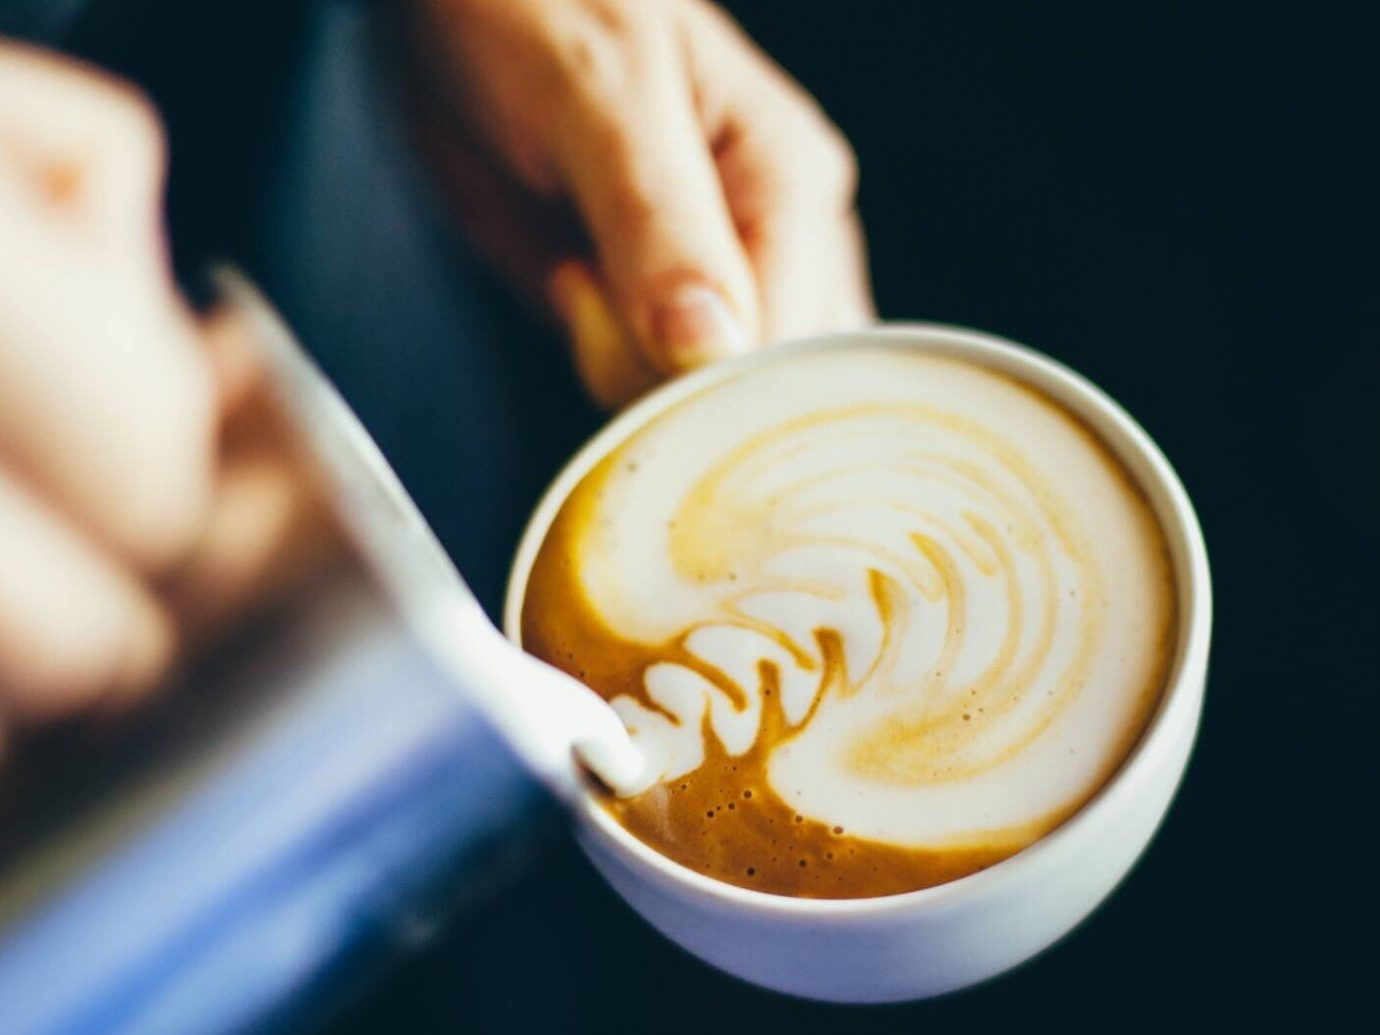 Food + Drink Offbeat Travel Trends cup coffee latte flat white Drink food cappuccino espresso caffè macchiato caffeine coffee cup coffee milk cuban espresso flavor ristretto café au lait mocaccino beverage close